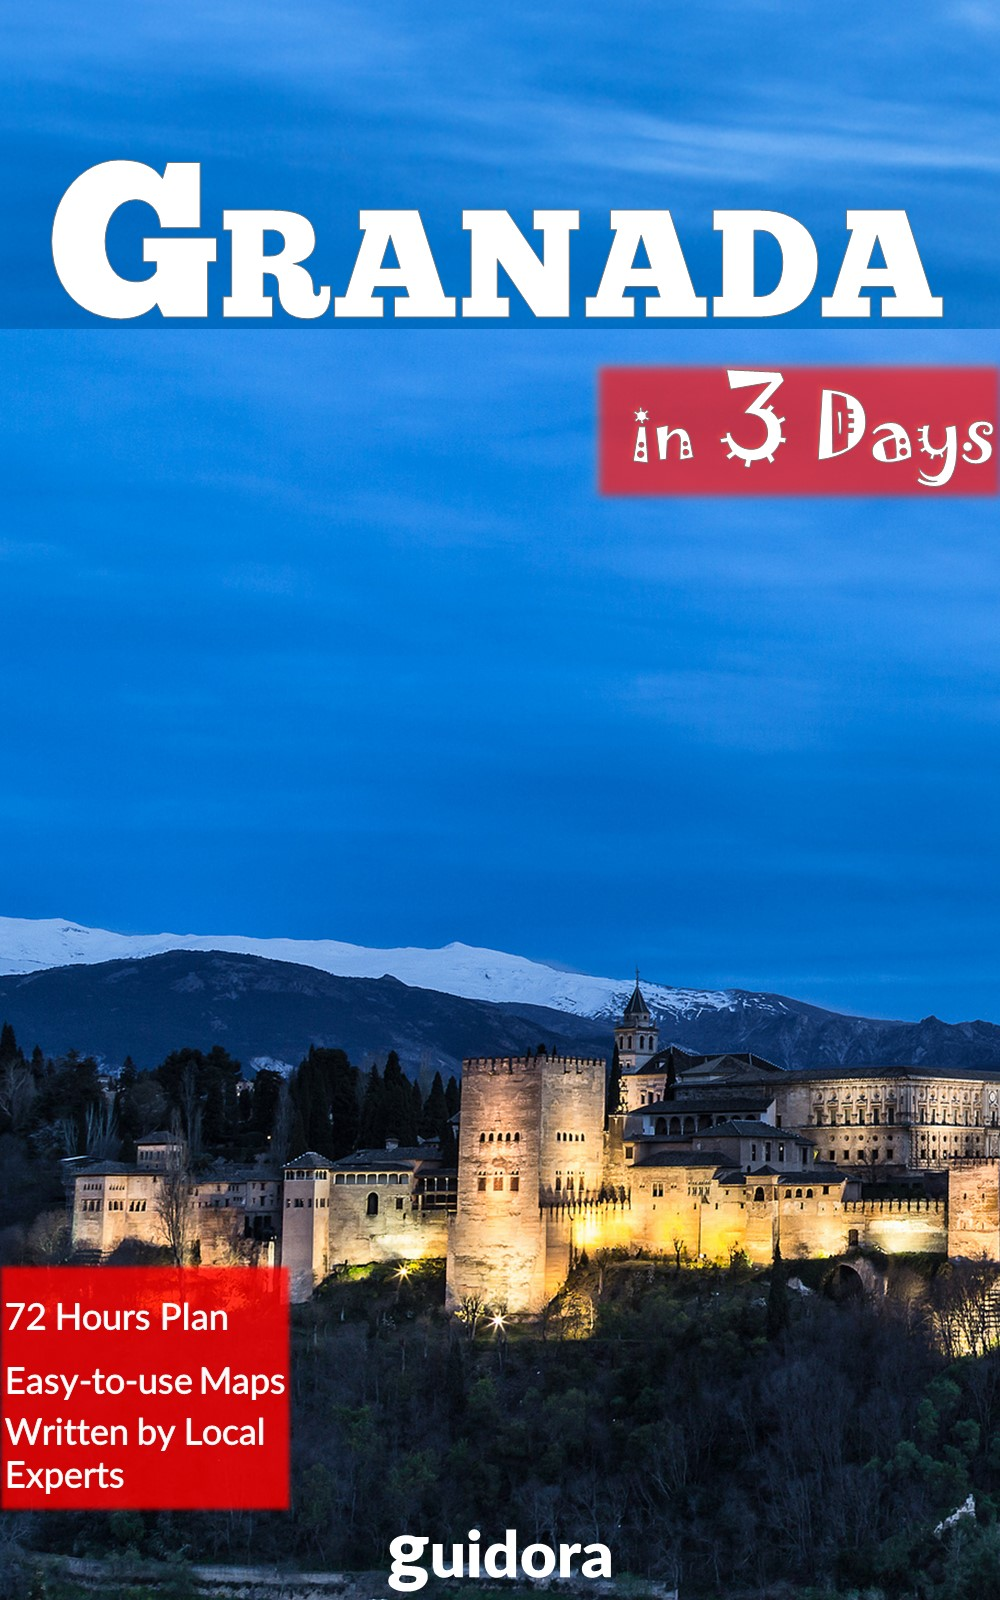 Granada in 3 Days Kindle Book Cover